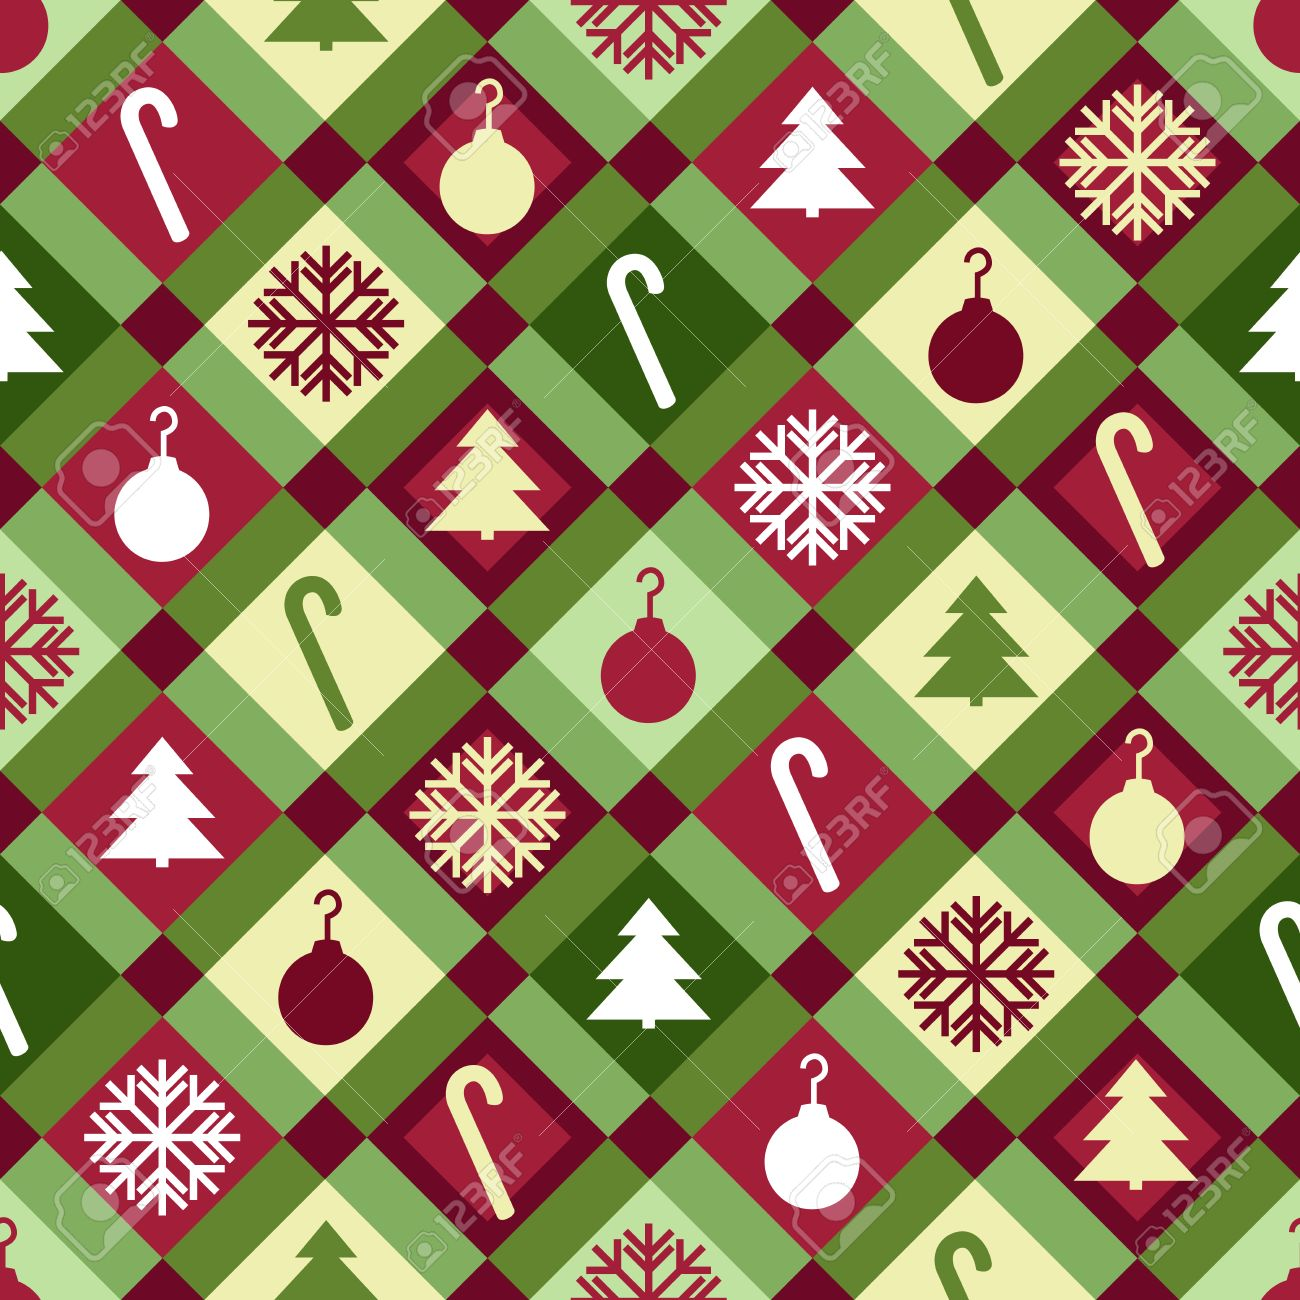 Christmas Quilt Patterns.A Red Green And Yellow Christmas Quilt Pattern Seamlessly Repeatable